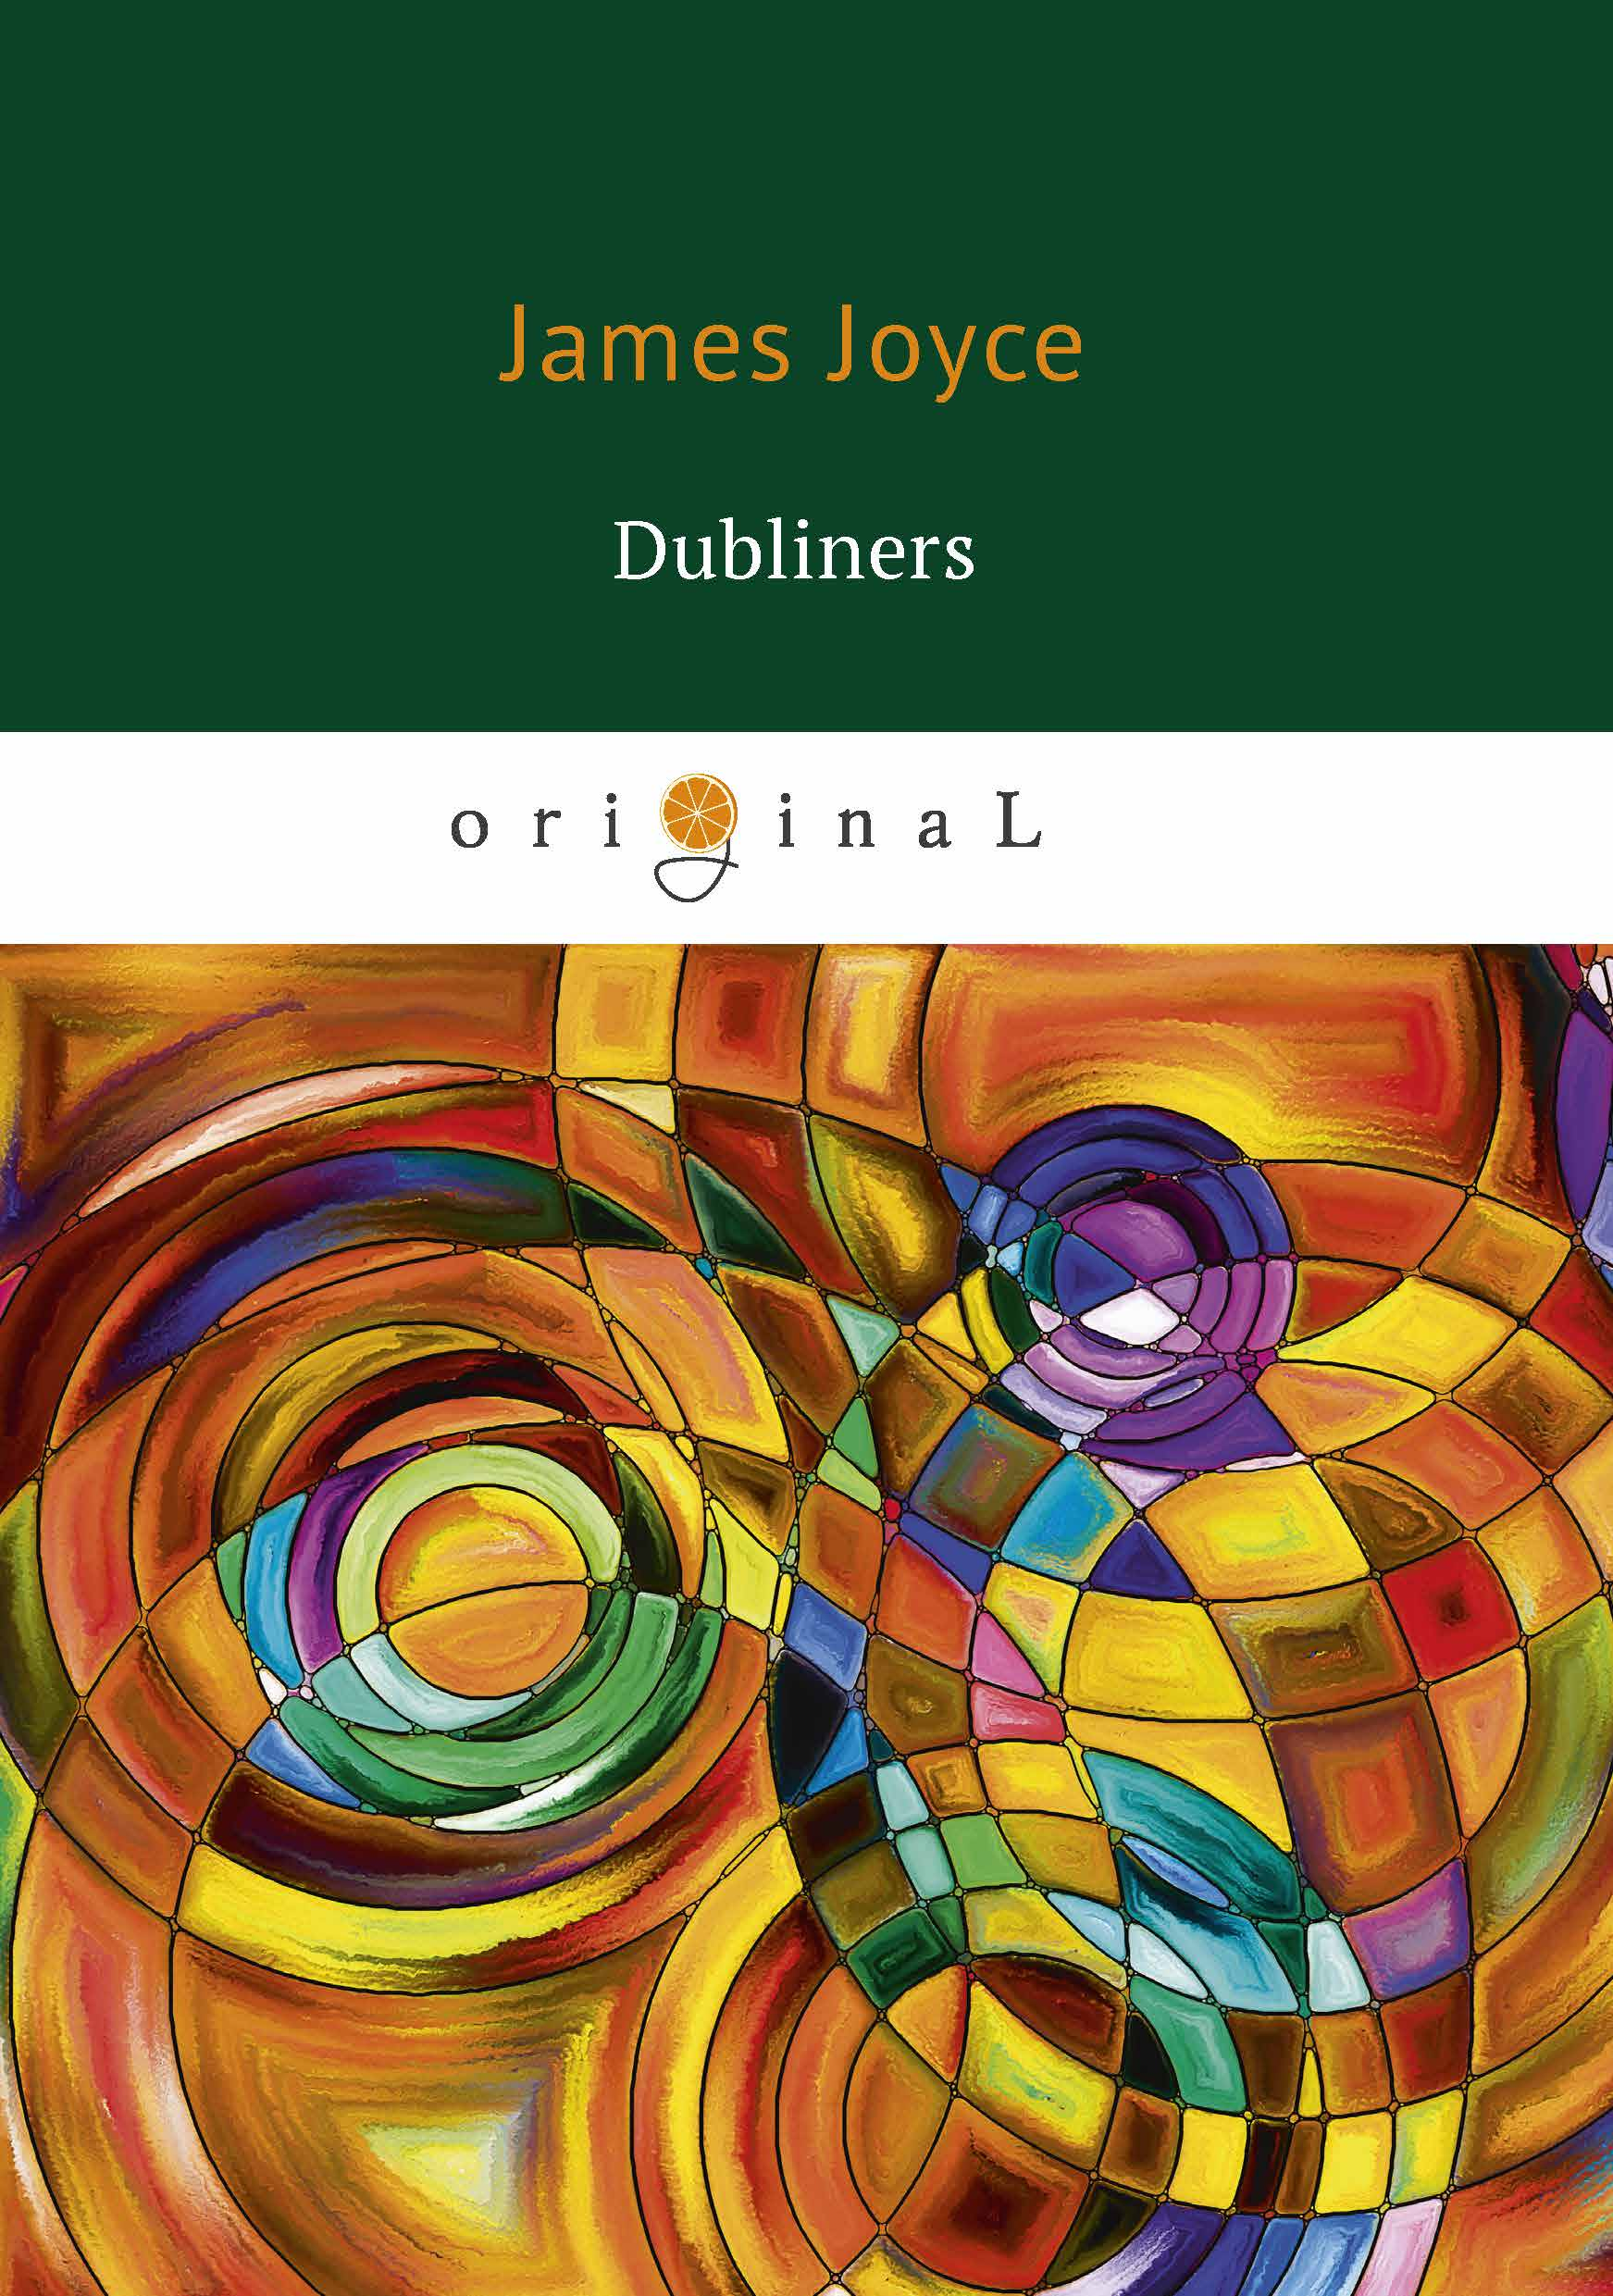 Joyce J. Dubliners victims stories and the advancement of human rights